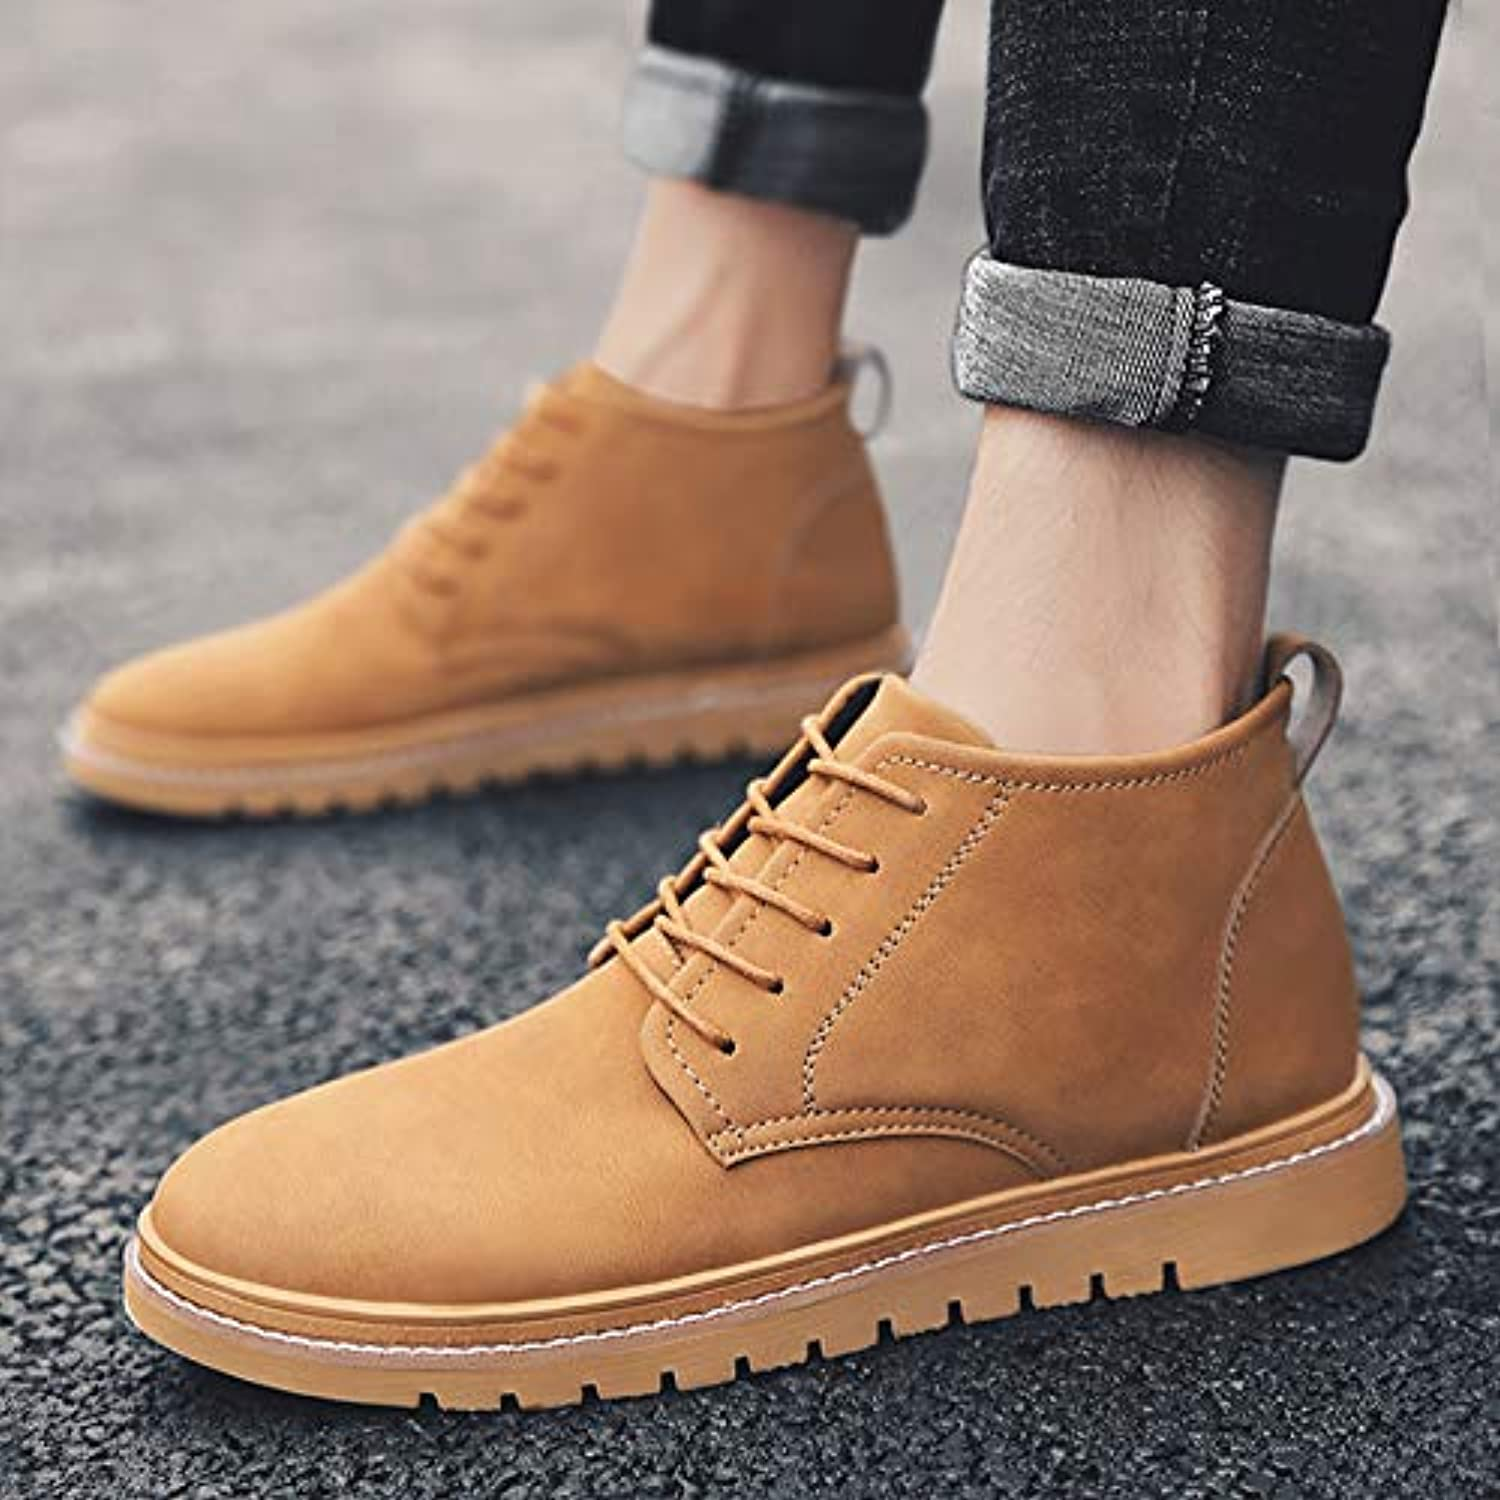 Shukun Men's boots Boots Men'S Martin Boots Men'S Boots Autumn Youth Wild High Help Tool Boots Casual shoes